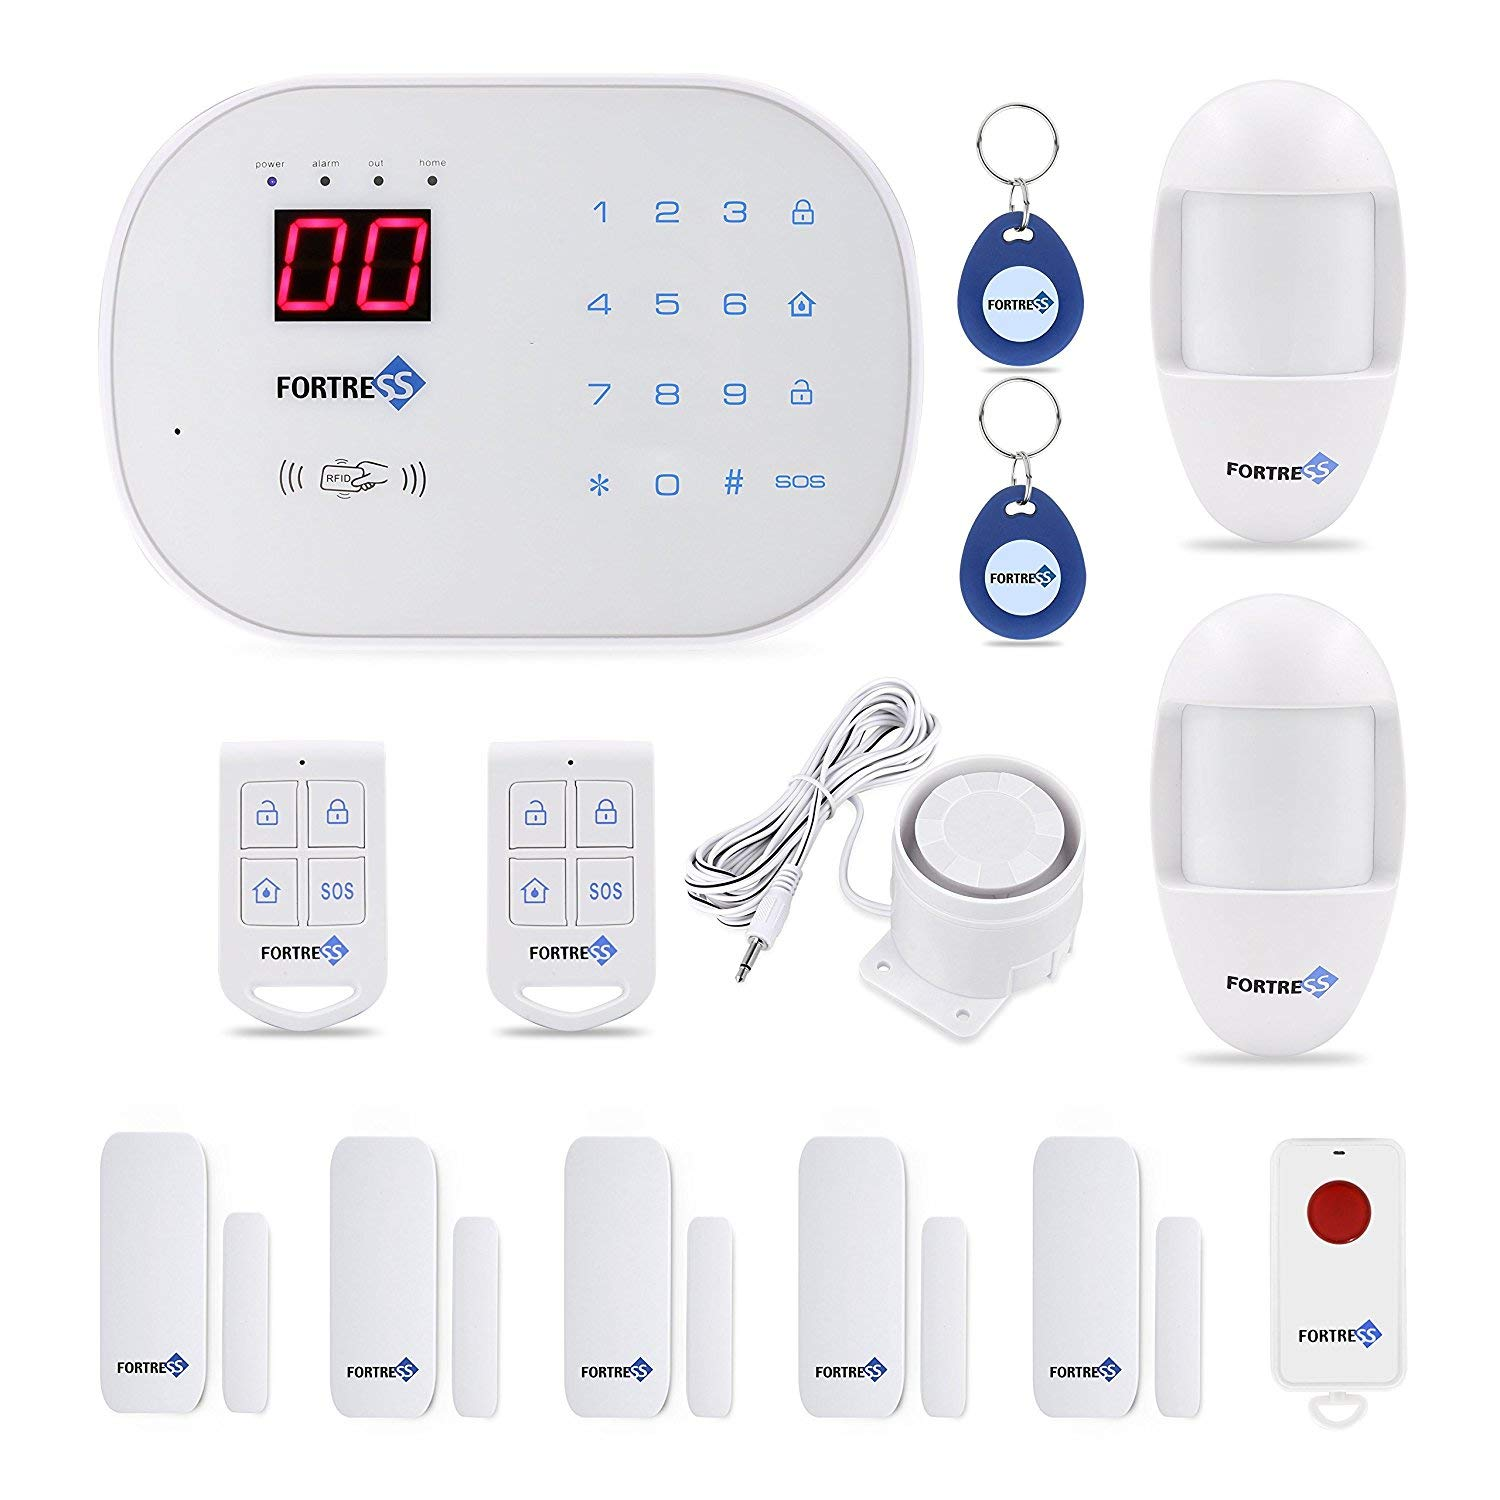 Fortress Security Store (TM) S02-A Wireless Home Security sistema DIY Kit de alarma con marcación automática